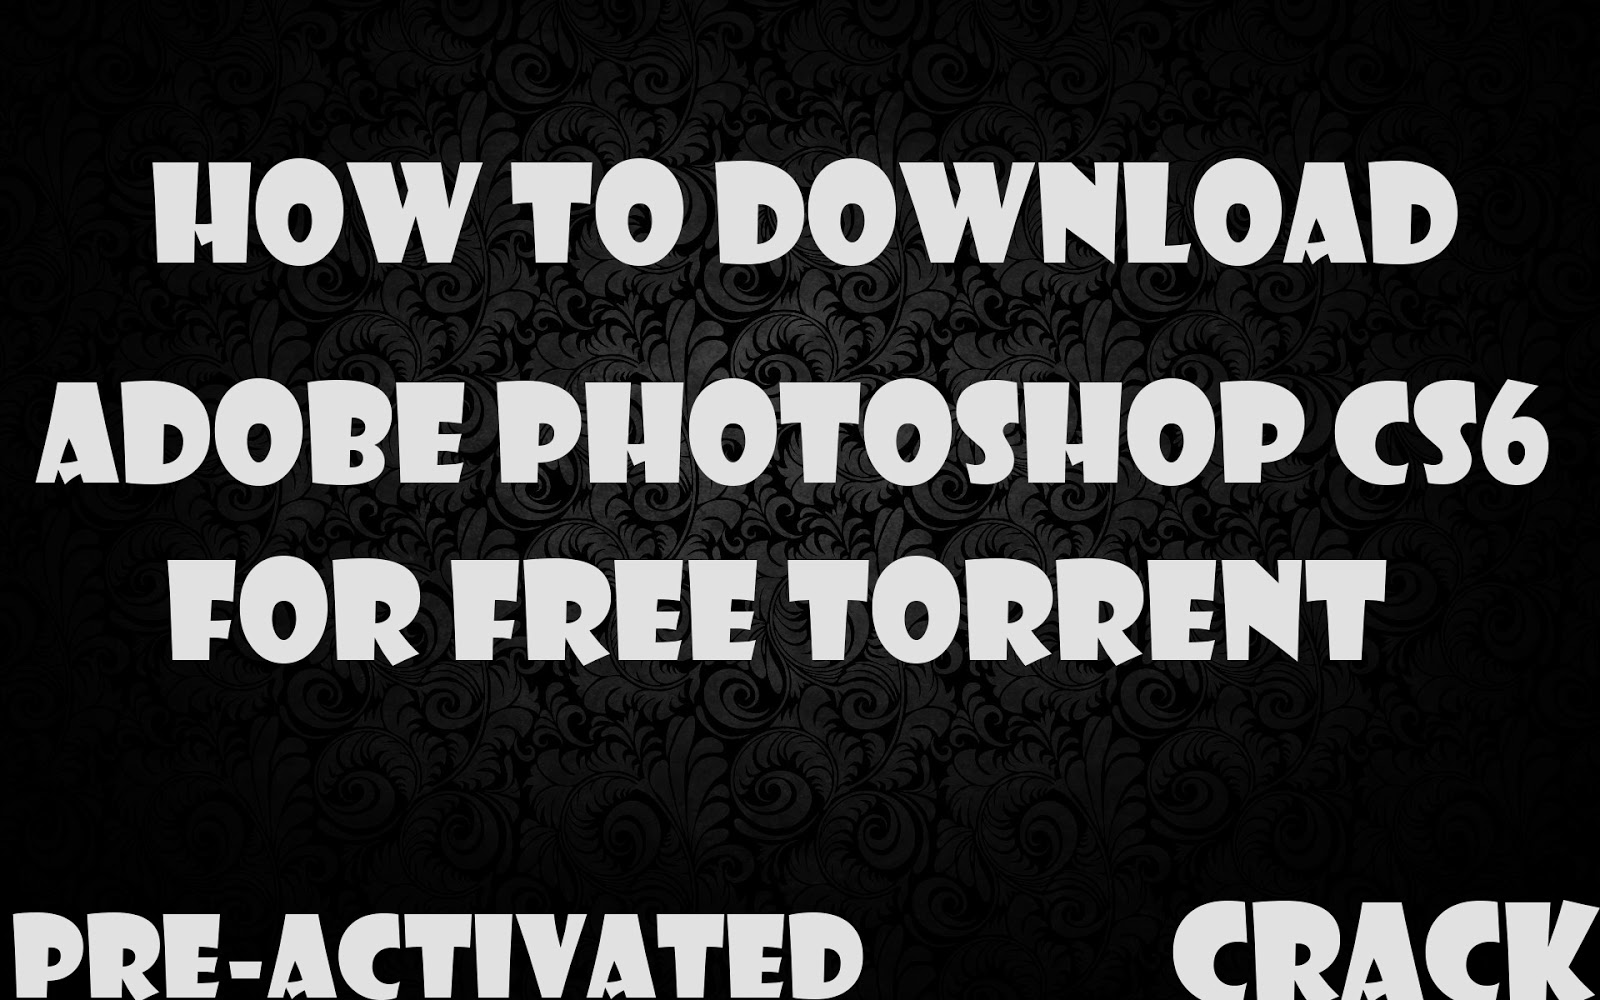 Download Adobe Photoshop CS6 For Free Full Version Pre